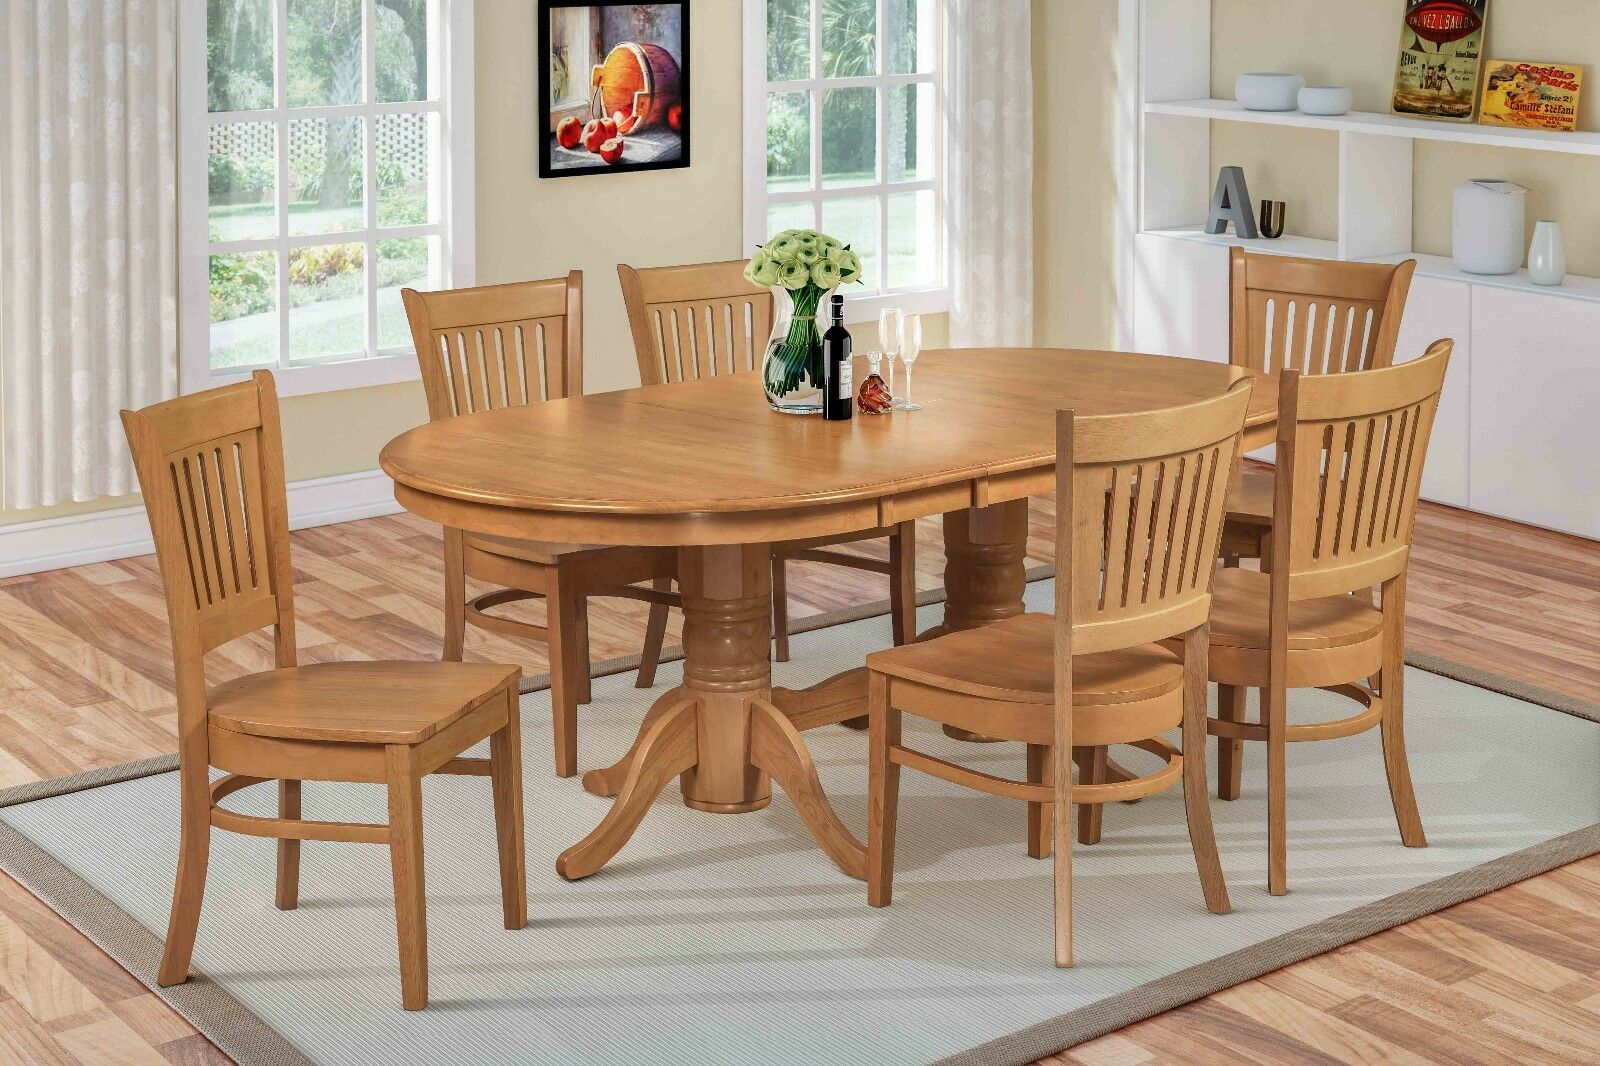 5 Pc Oval Dinette Kitchen Dining Room Set 42 X78 Table 4 Woden Chairs For Sale Online